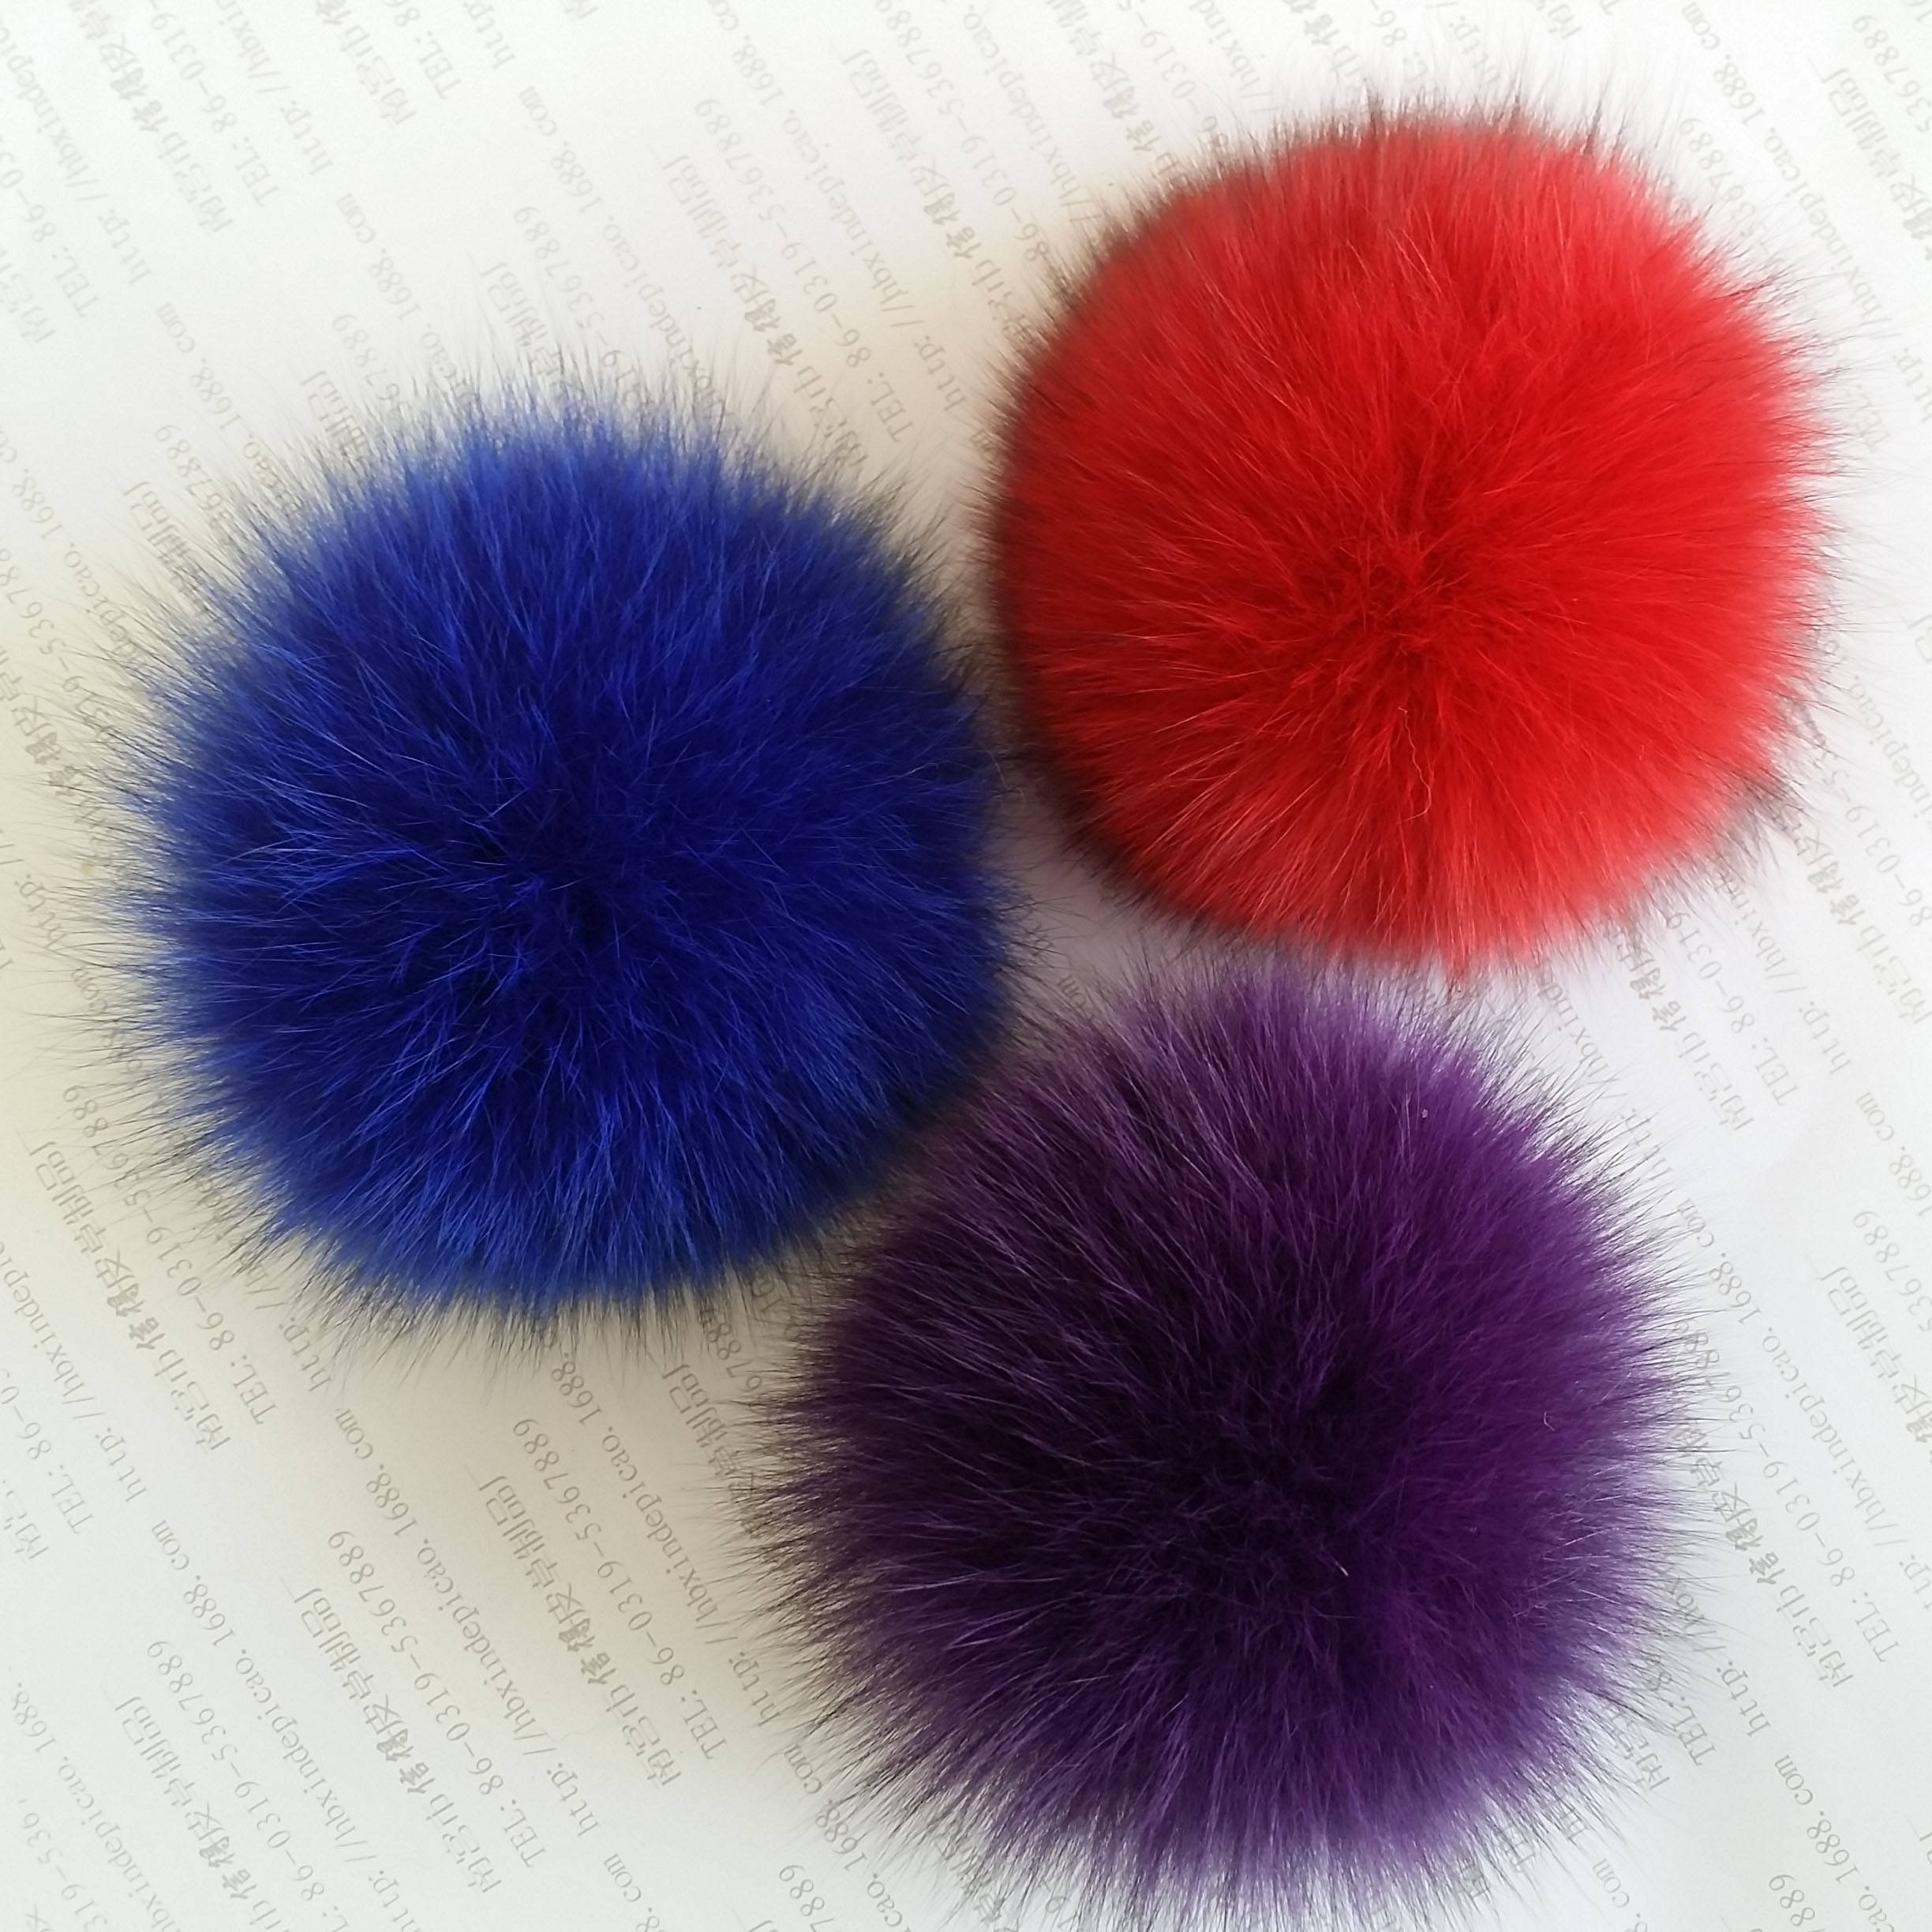 Natural furry real fox fur pom poms as keychain charm